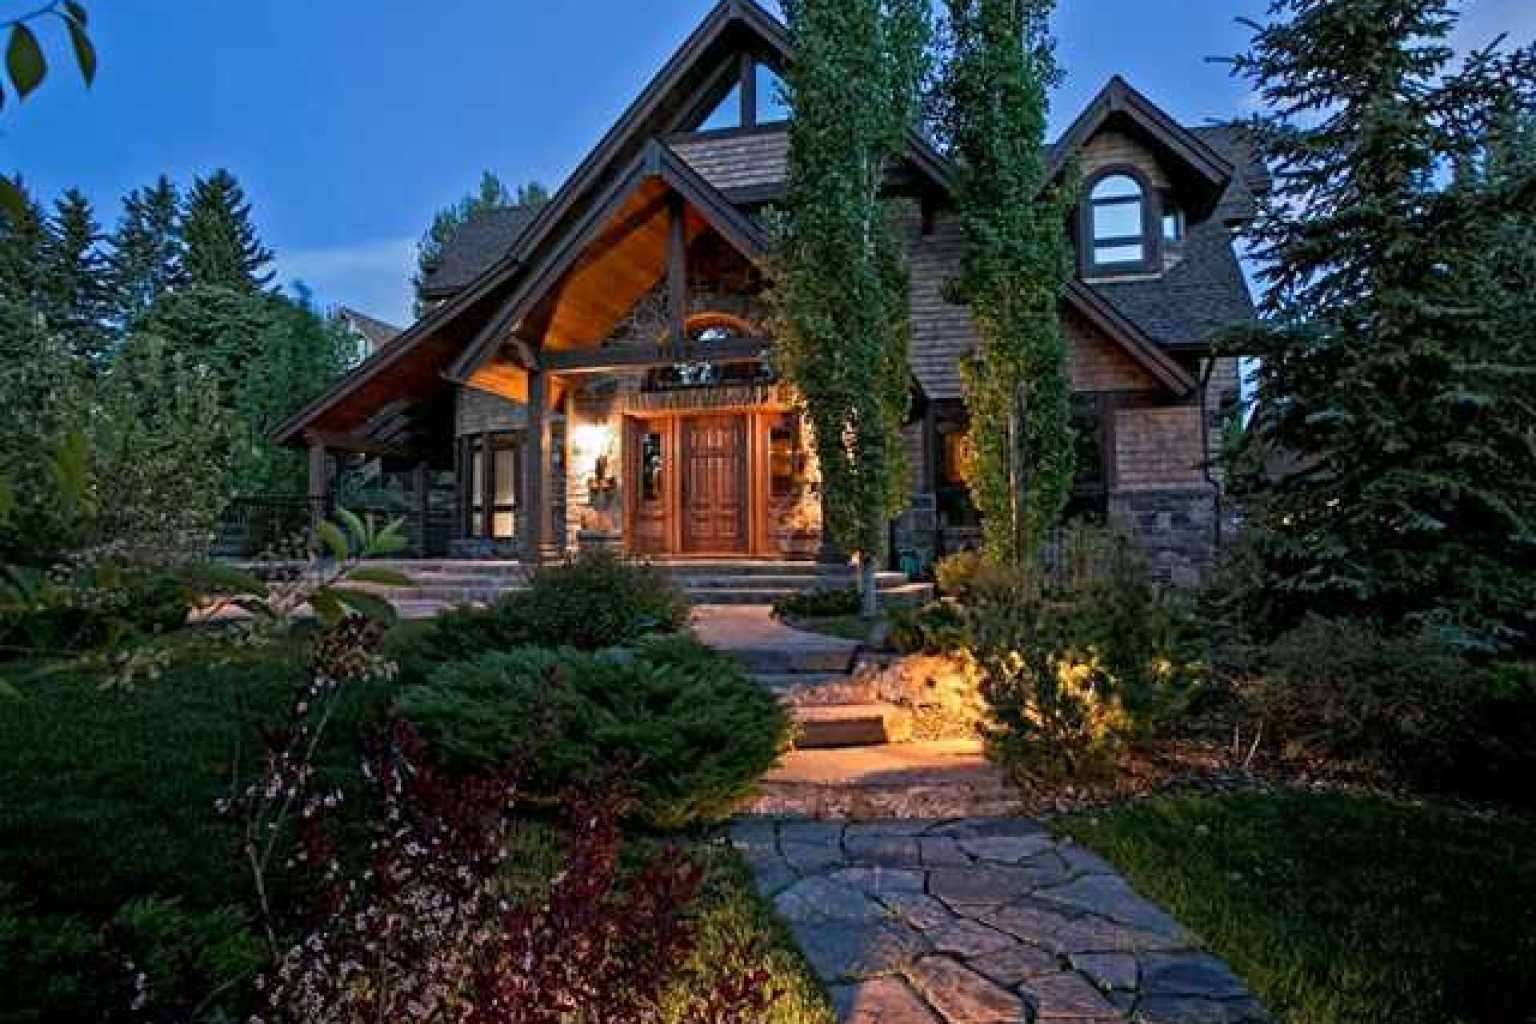 calgary mount royal mansion for sale for 8 5 million photos. Black Bedroom Furniture Sets. Home Design Ideas